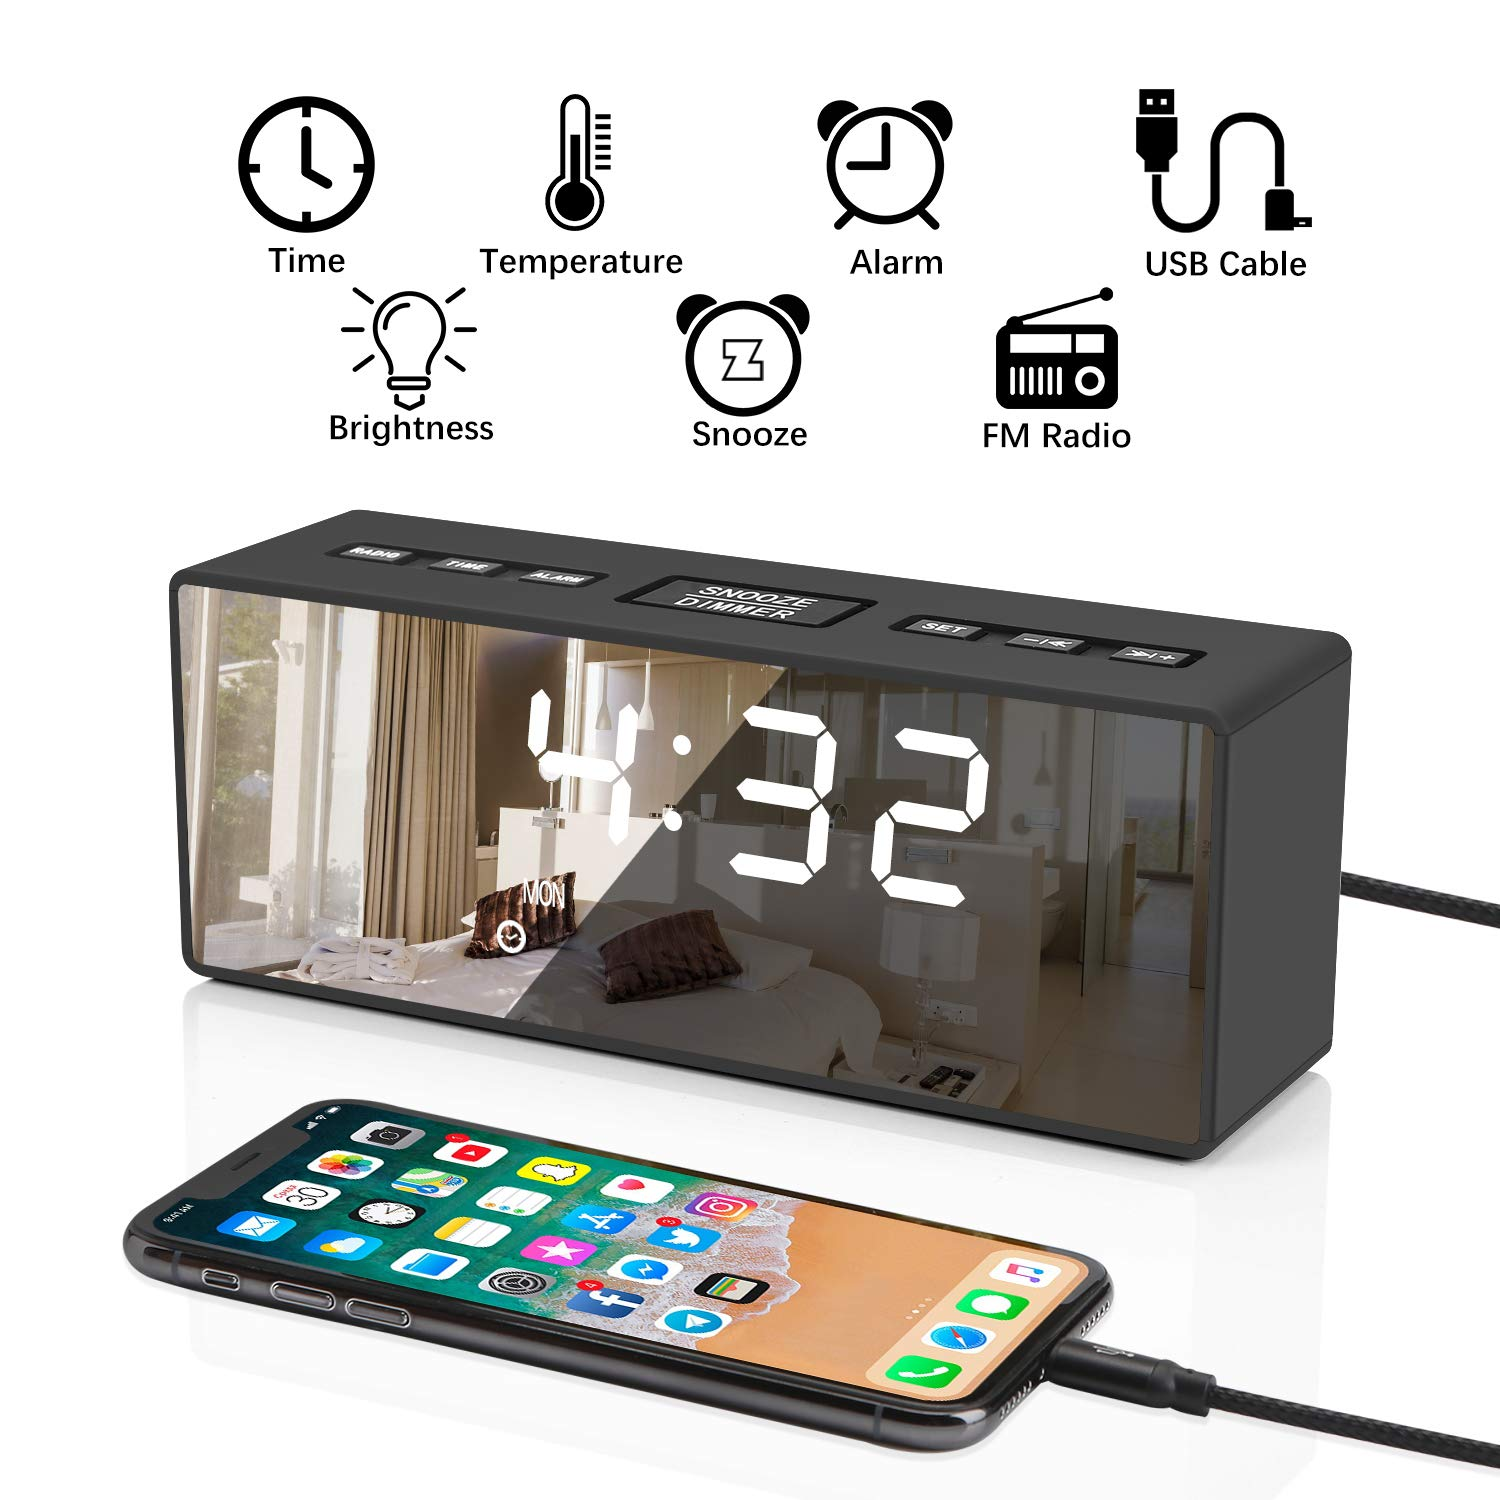 ieGeek Digital Alarm Clock with FM Radio, Bedside Alarm Clocks Mirror HD LED with Time, Date, Week, Temperature Display Function, LED Clock Battery Powered, Four Adjustable Brightness, Dual Alarms,Dual USB Port Charging, Suitable for Bedroom, Office, Trav